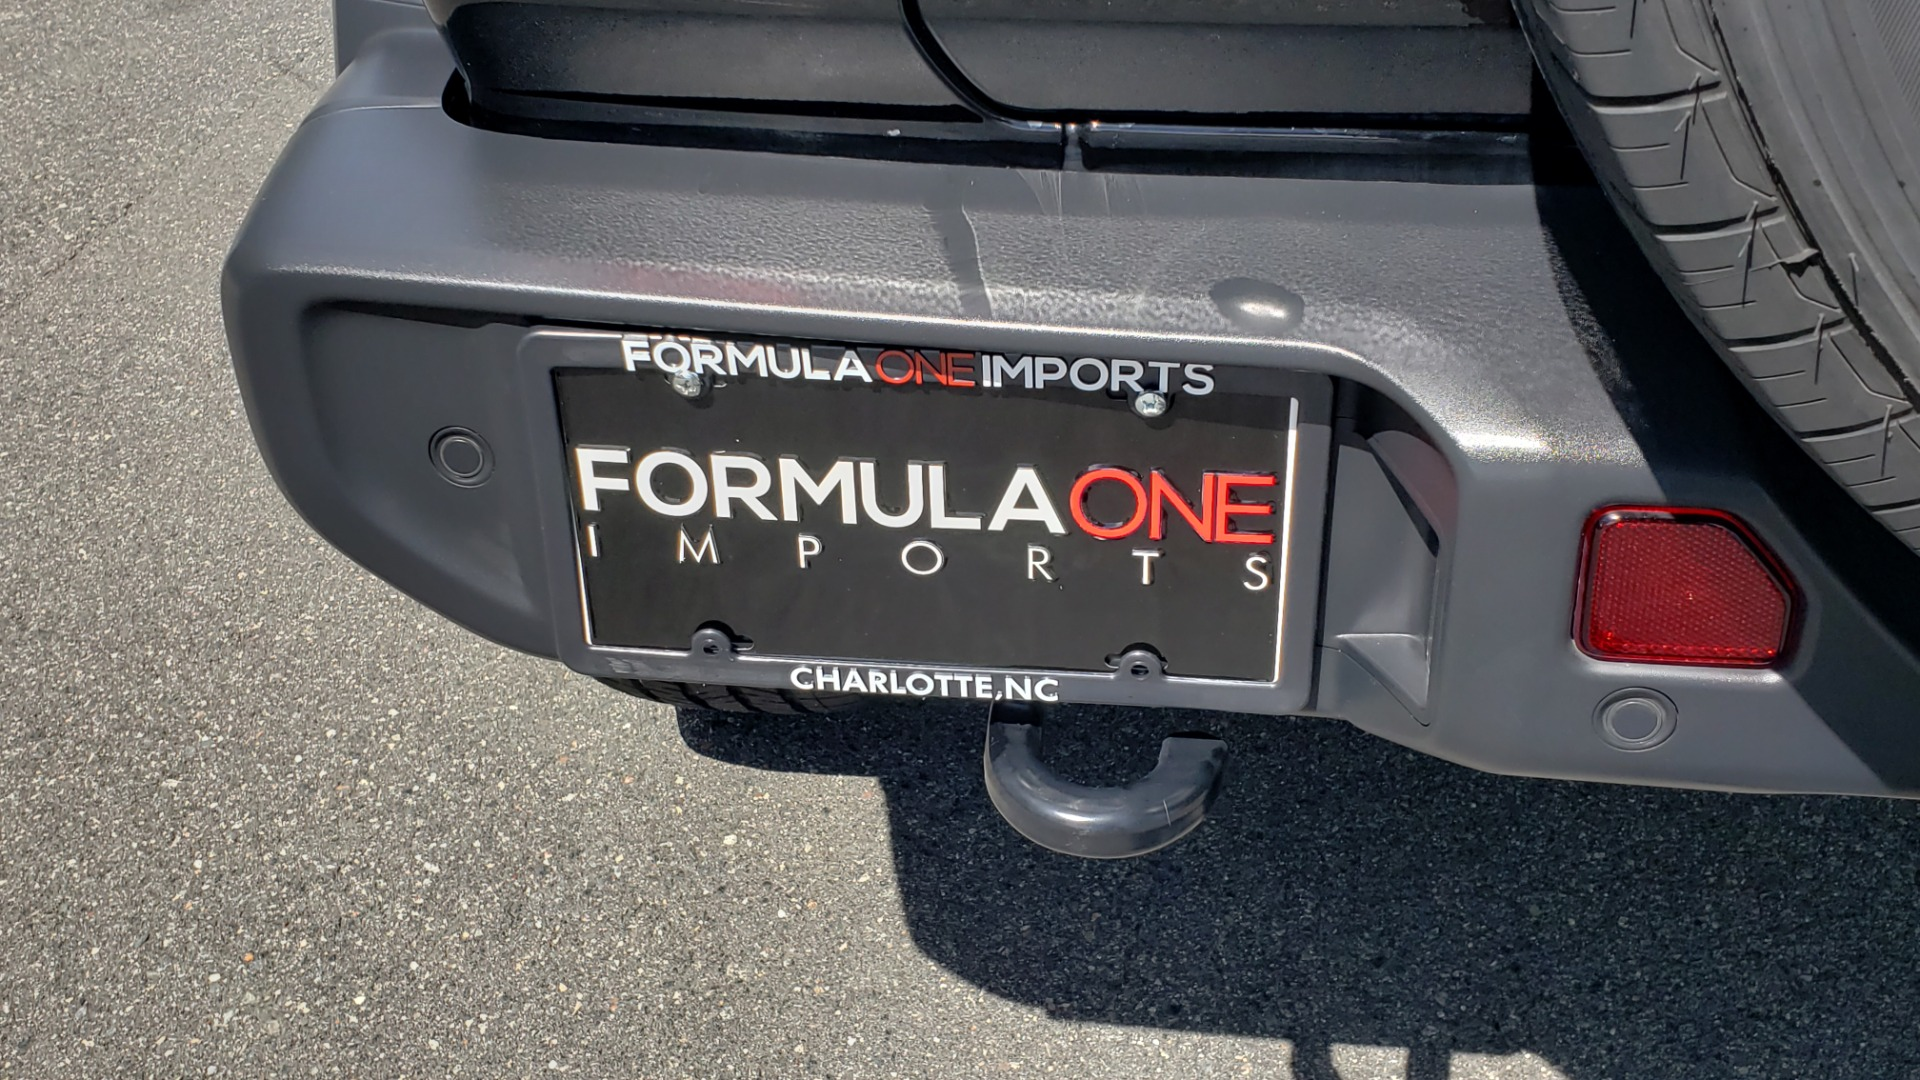 Used 2018 Jeep WRANGLER UNLIMITED SAHARA / 3.6L V6 / 6-SPD MAN / ALPINE / NAV / HTD STS / REARVIEW for sale $43,999 at Formula Imports in Charlotte NC 28227 45